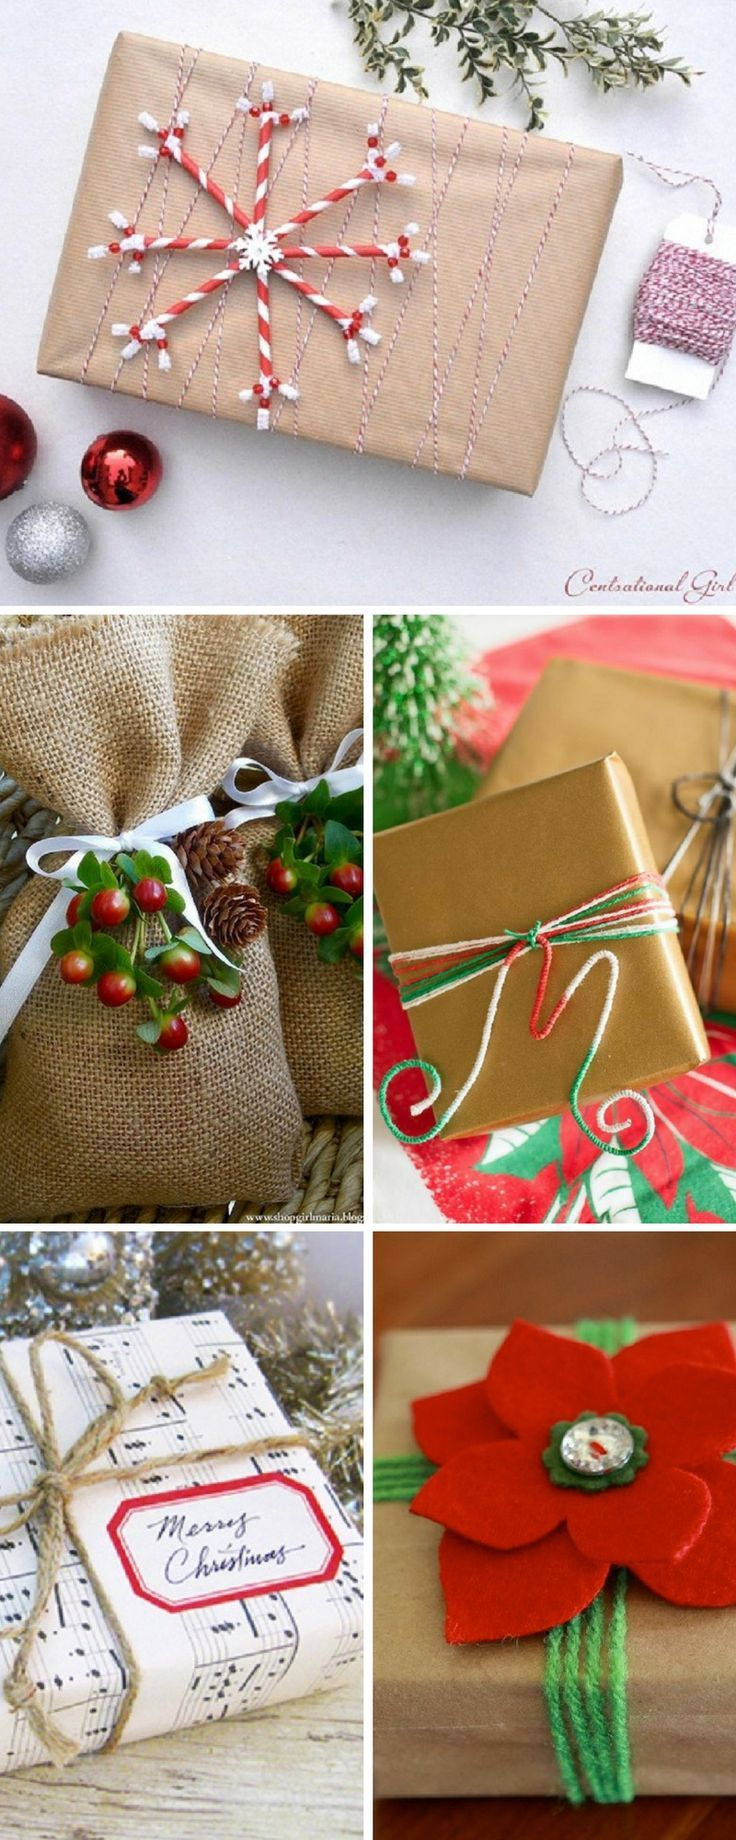 diy 20162017 weve made a list of top 10 diy chri diy 20162017 description weve made a list of top 10 diy christmas gift wrap ideas which will add